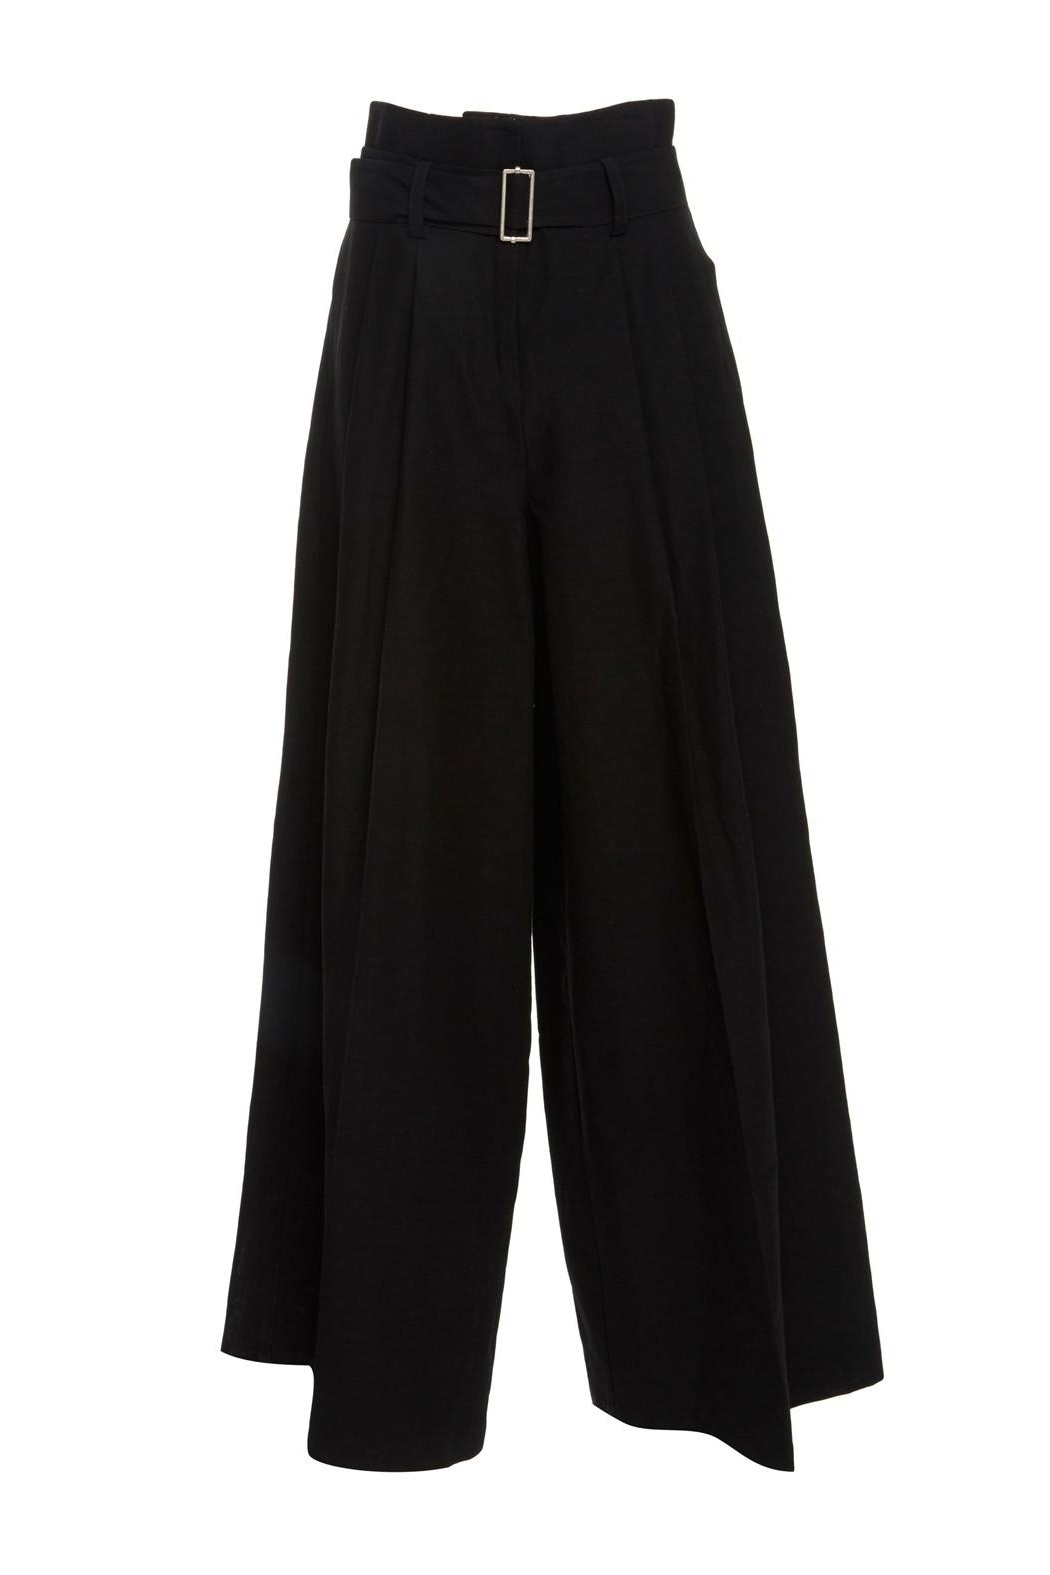 SEA High Waisted Pants - Front Cropped Image